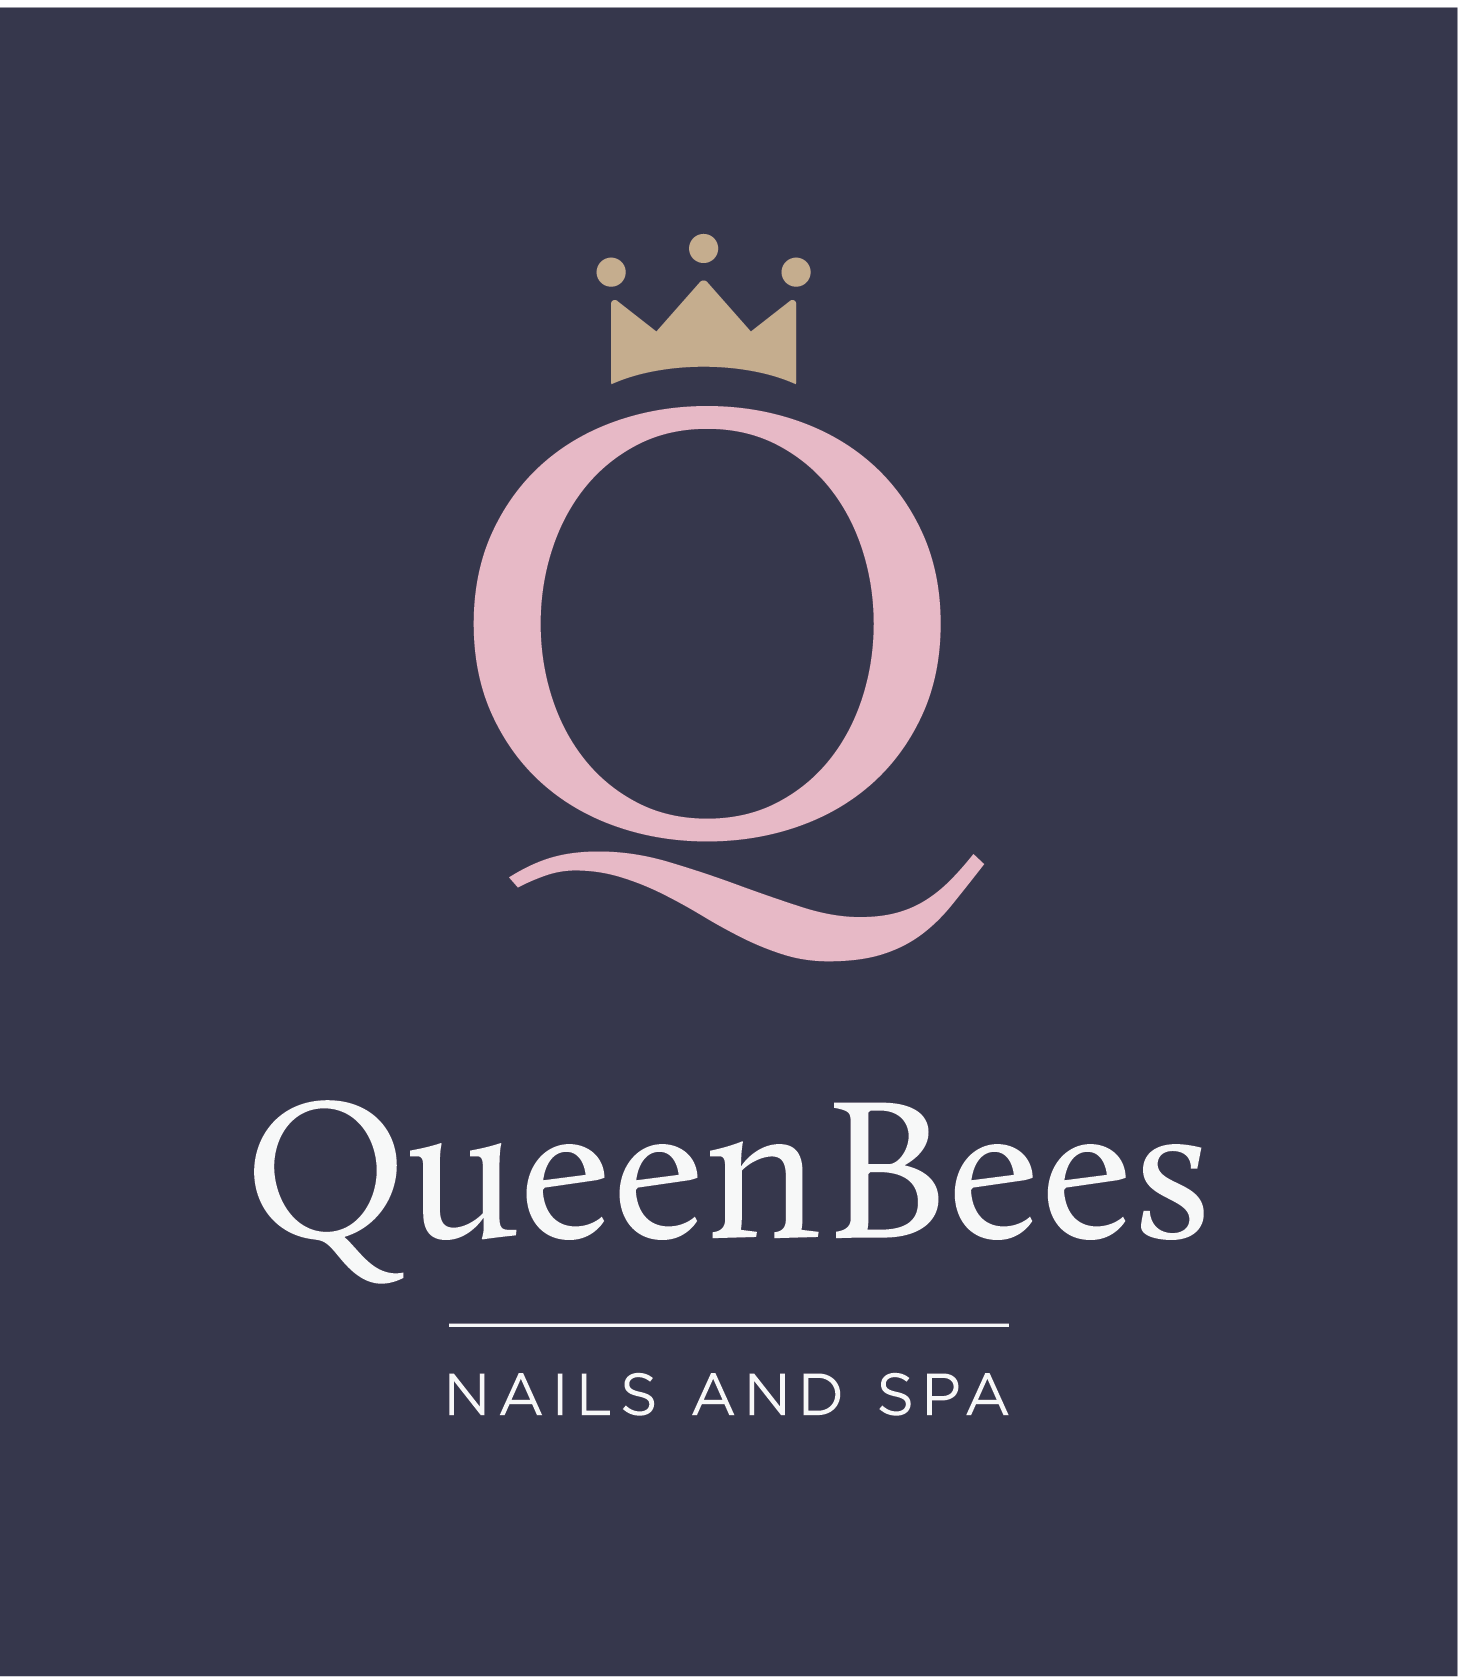 Logo Nails and Spa blue background